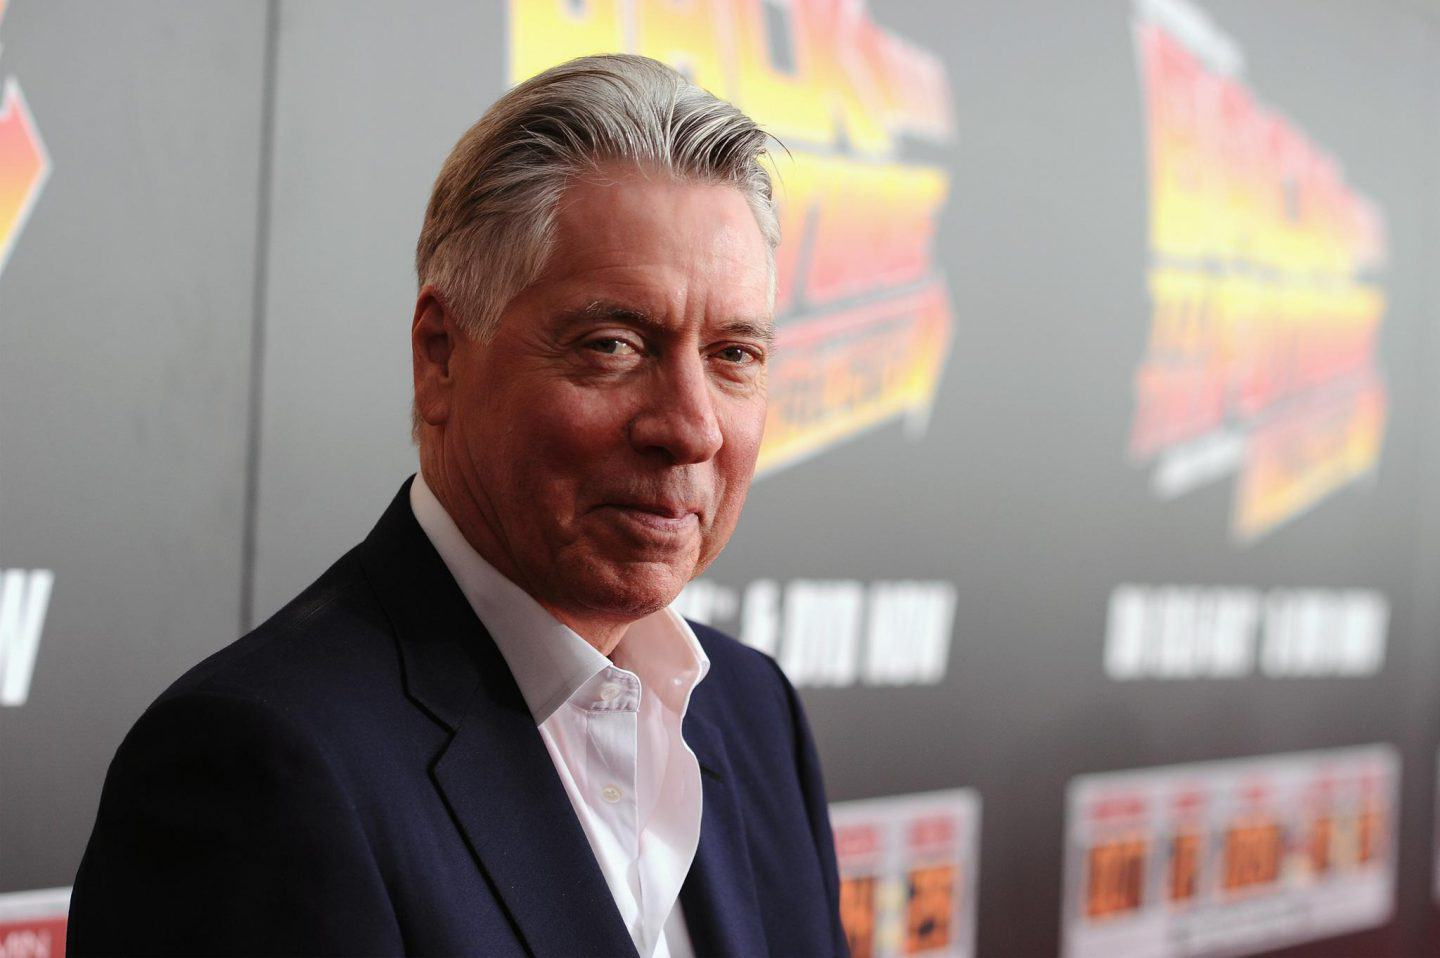 Scoring the future with Alan Silvestri